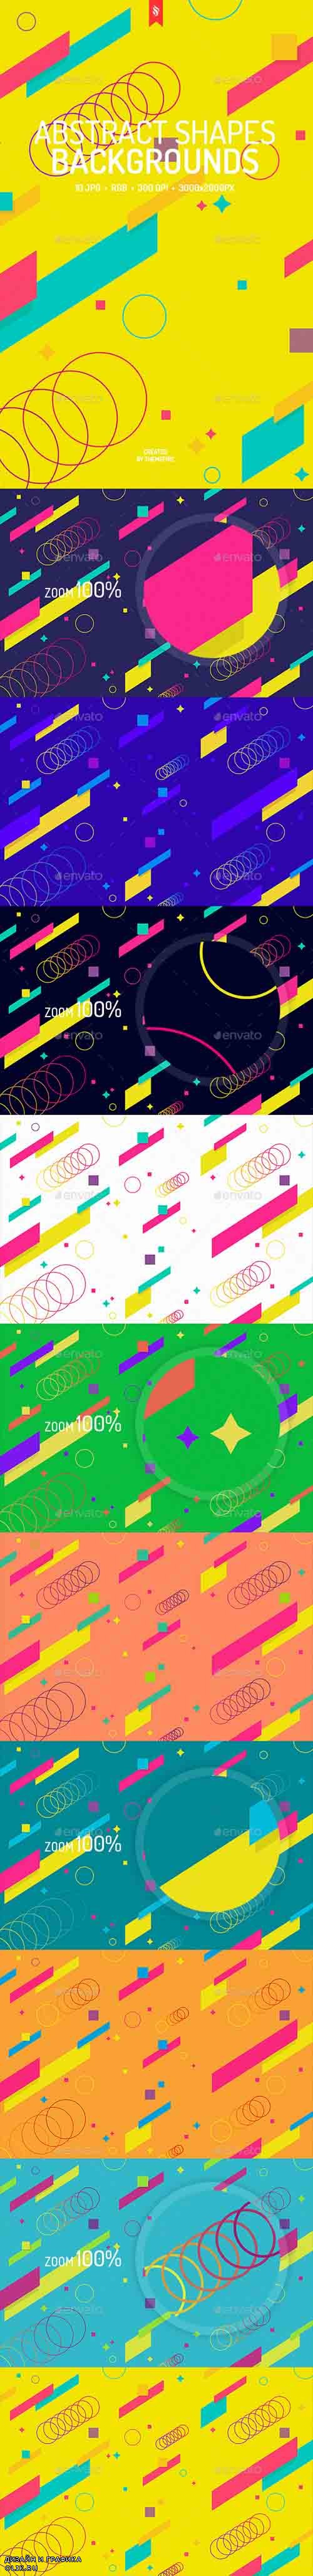 Abstract Shapes Backgrounds 19388379